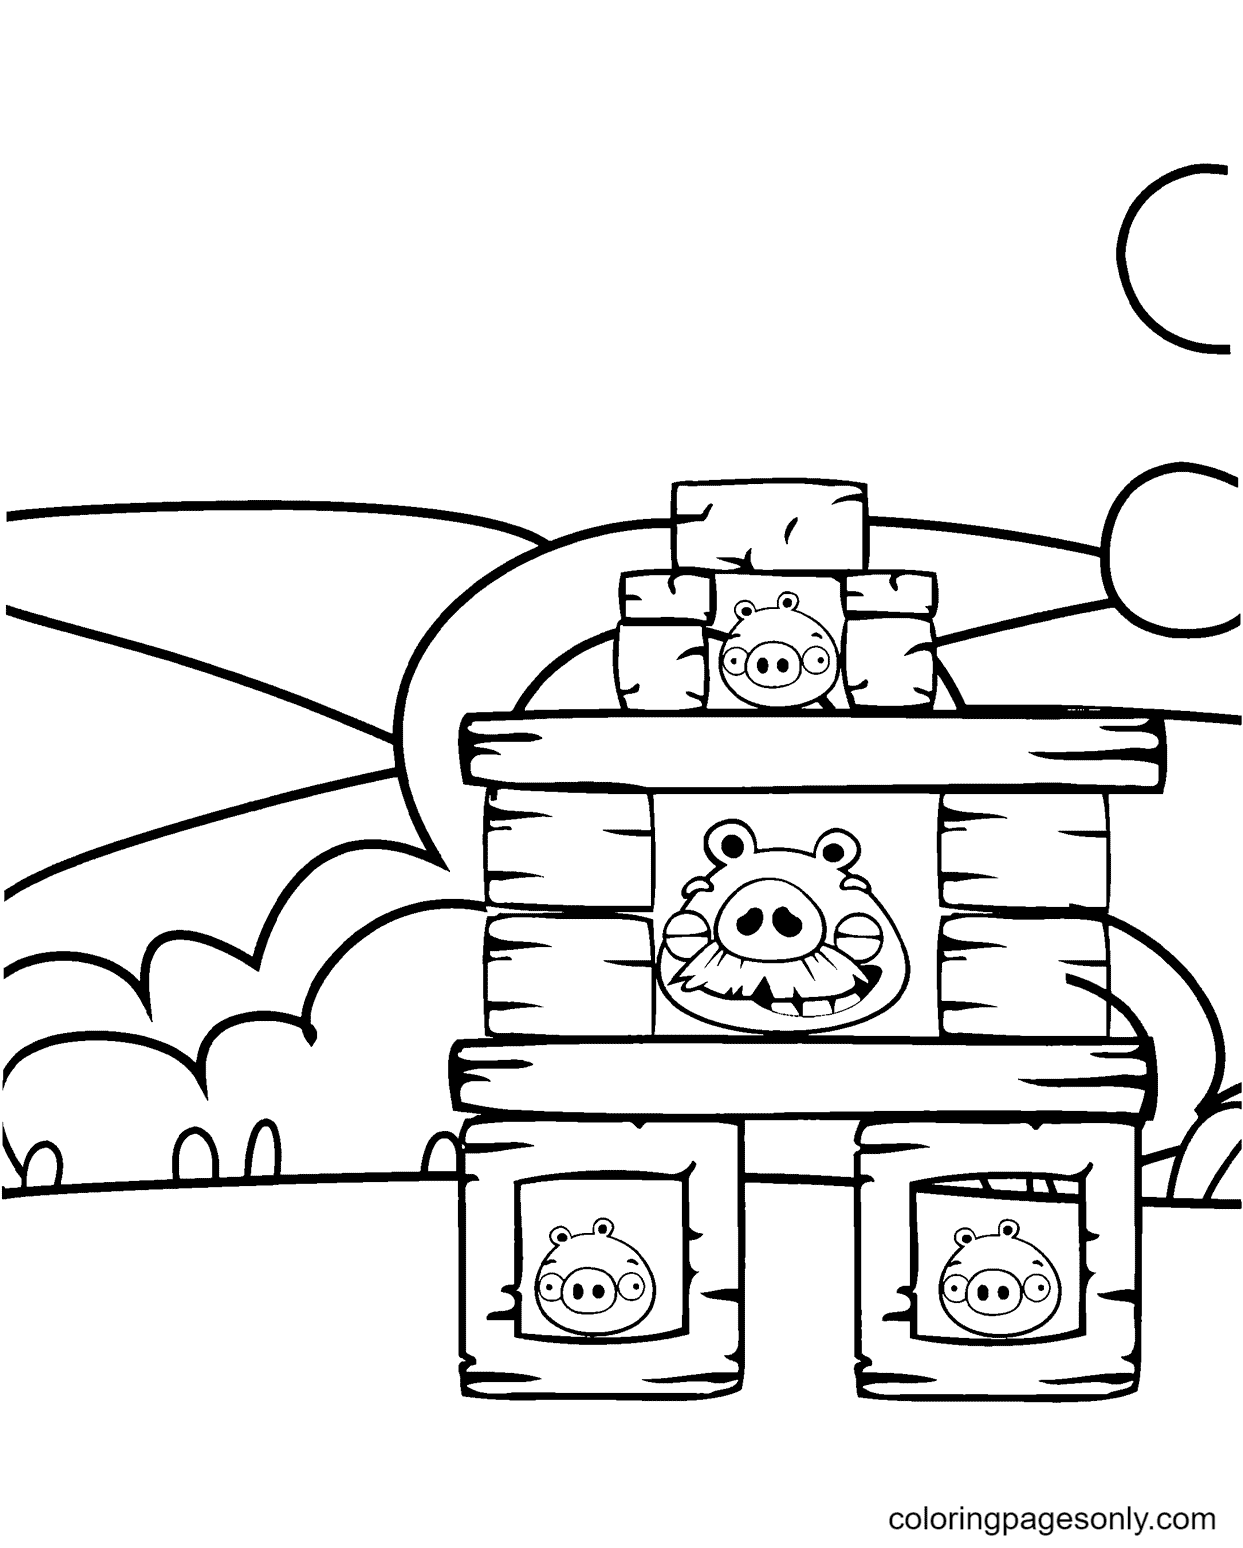 Pig's Fortifications Coloring Page